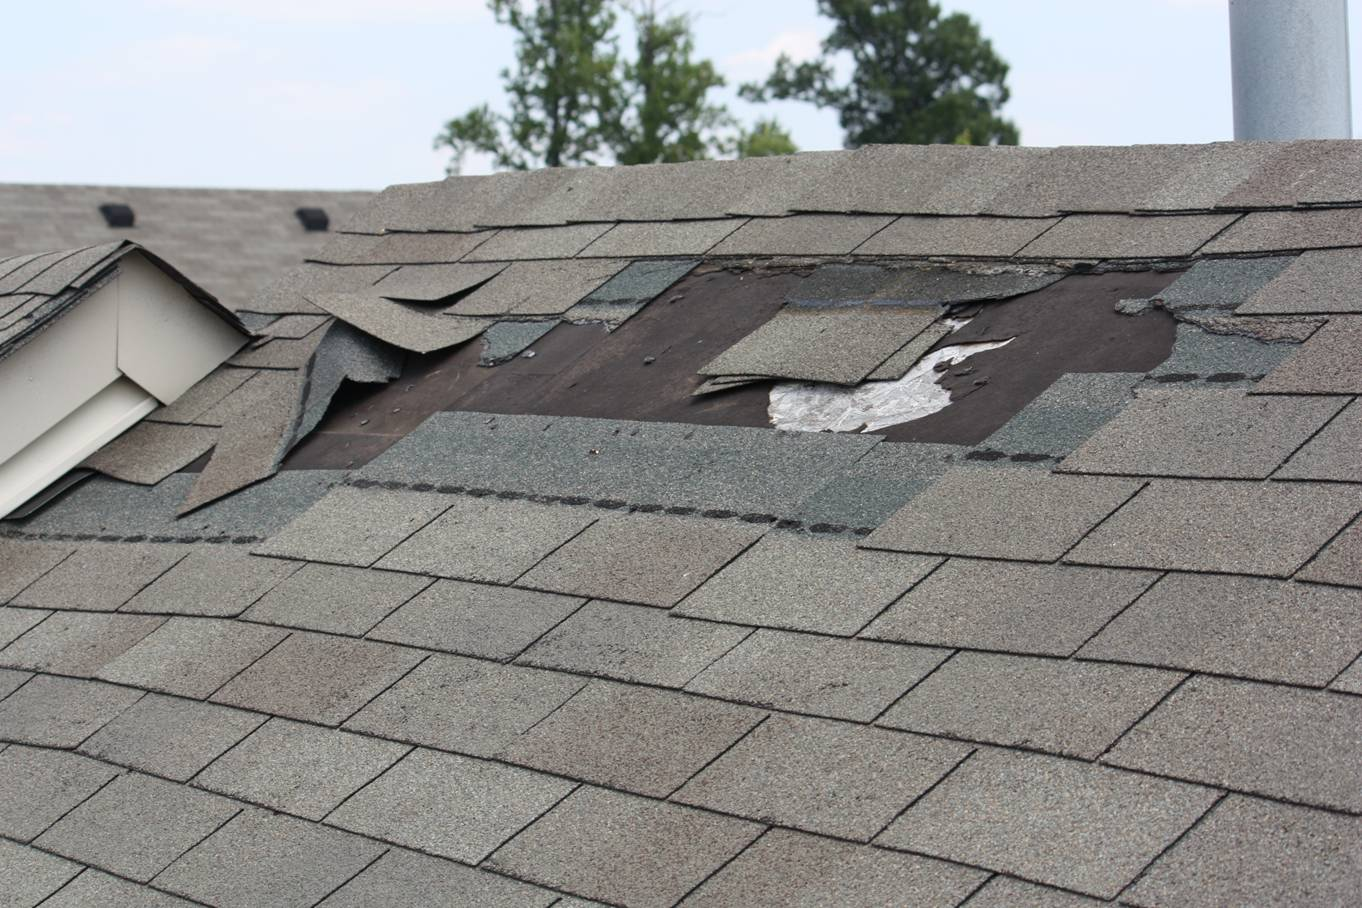 Leaking Roof Repair roof repair in sacramento - 916-472-0507